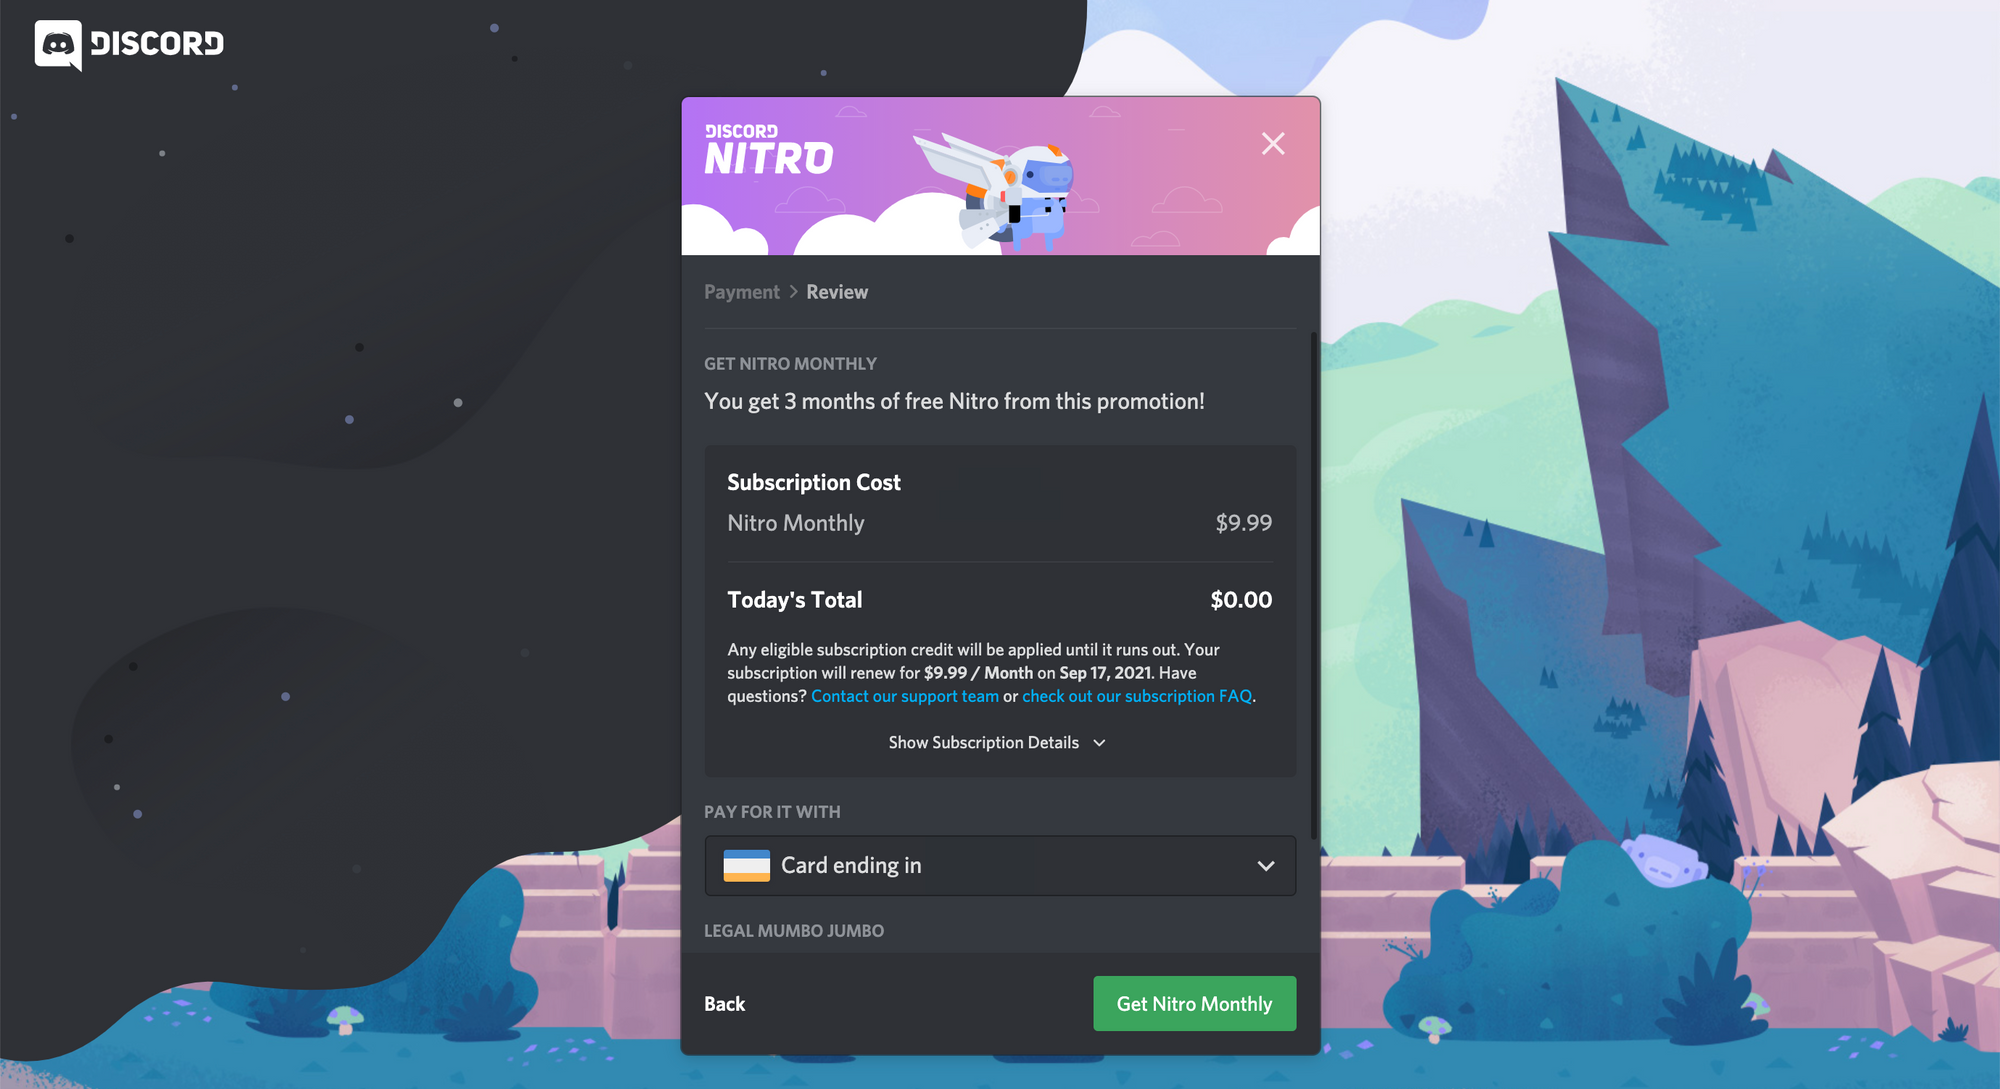 A screenshot of the payment information page required to get free Discord Nitro.